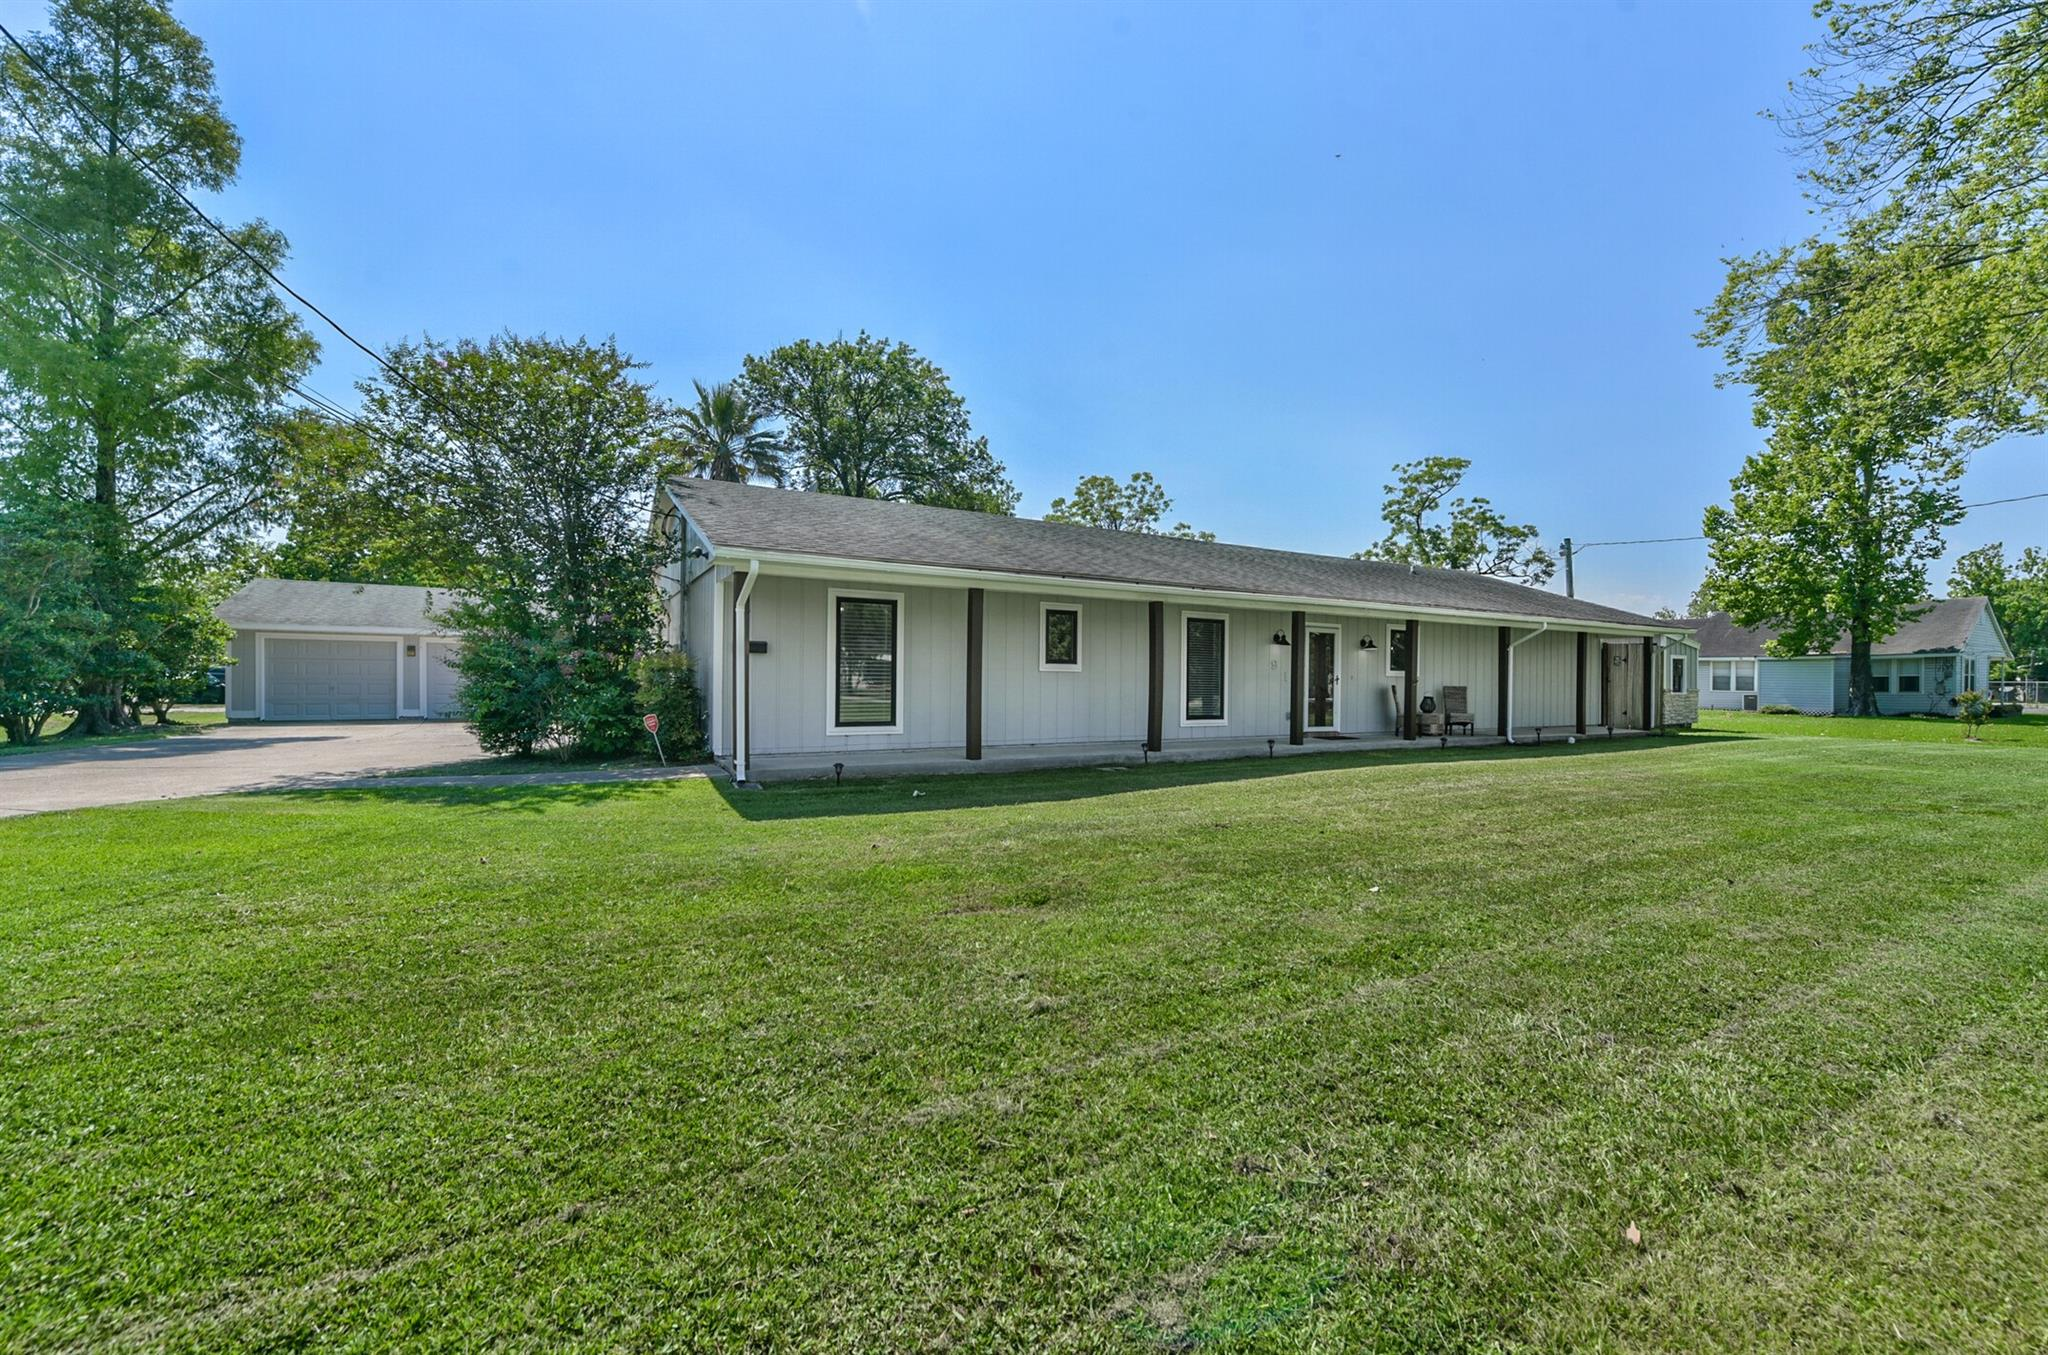 911 Becker St Property Photo - Channelview, TX real estate listing